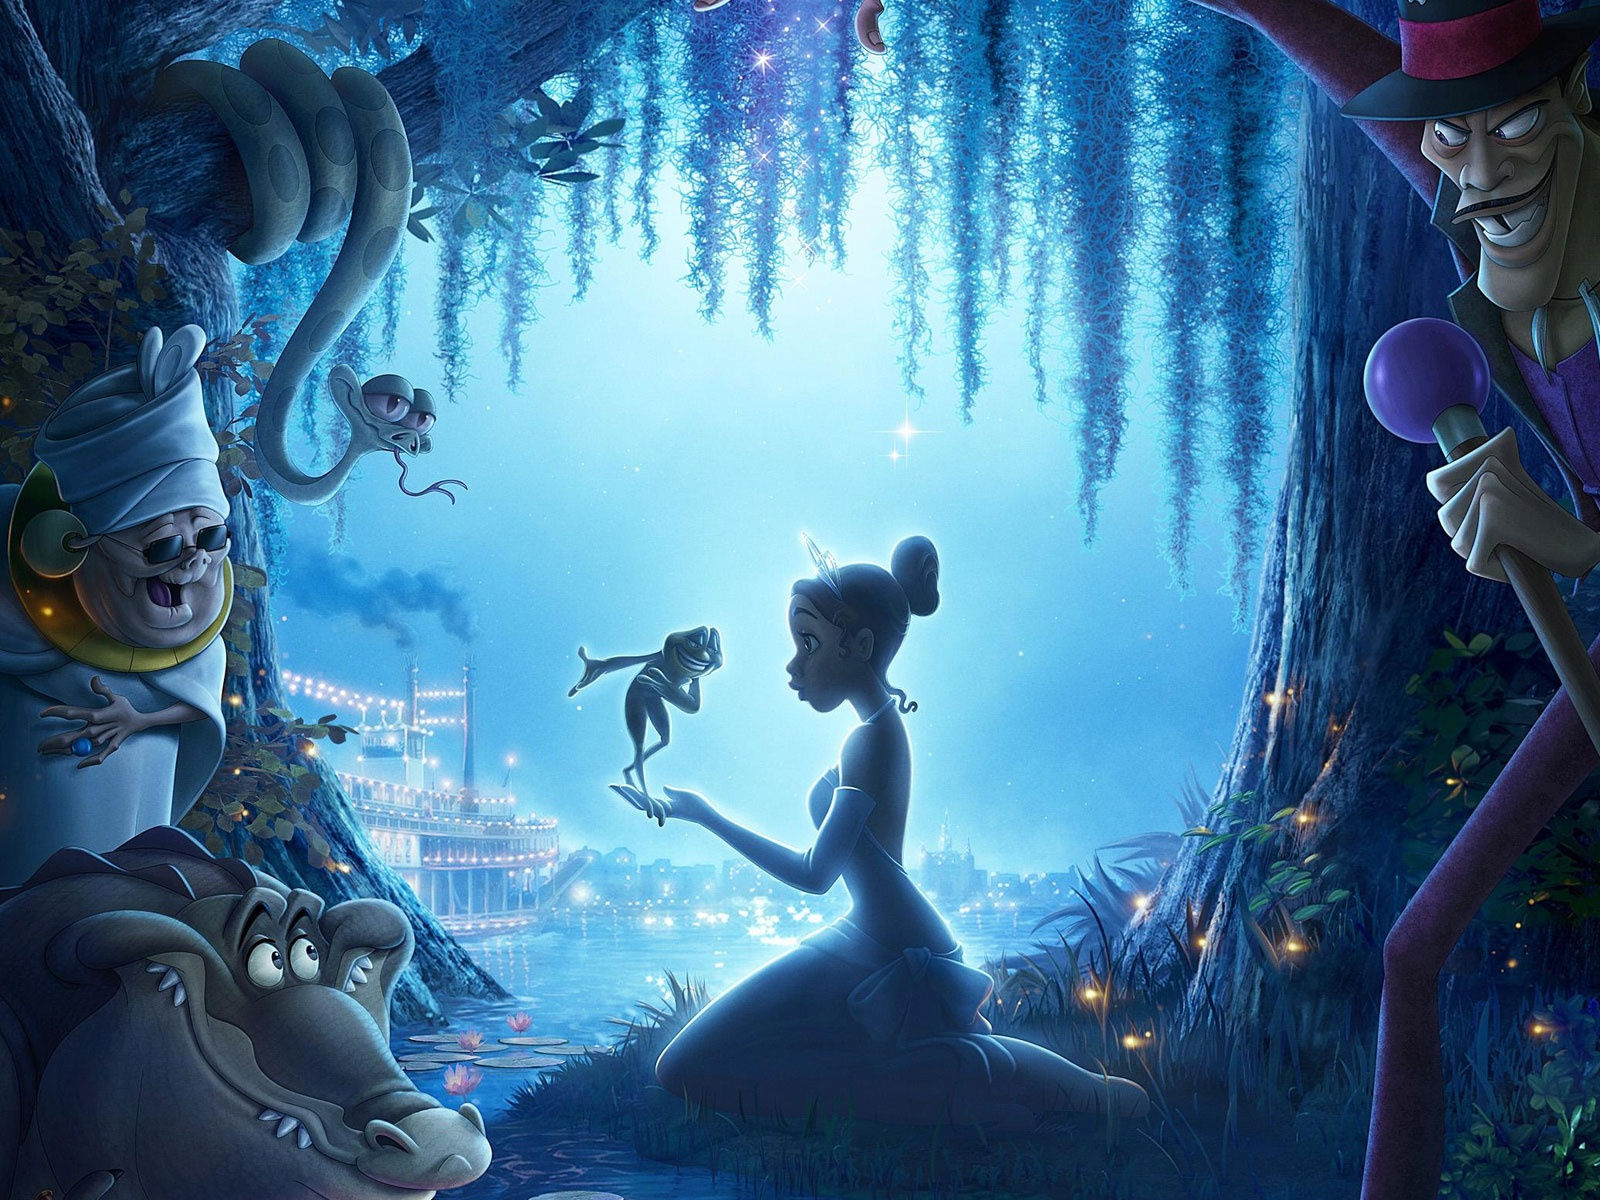 Tekenfilm - The Princess And The Frog  Wallpaper